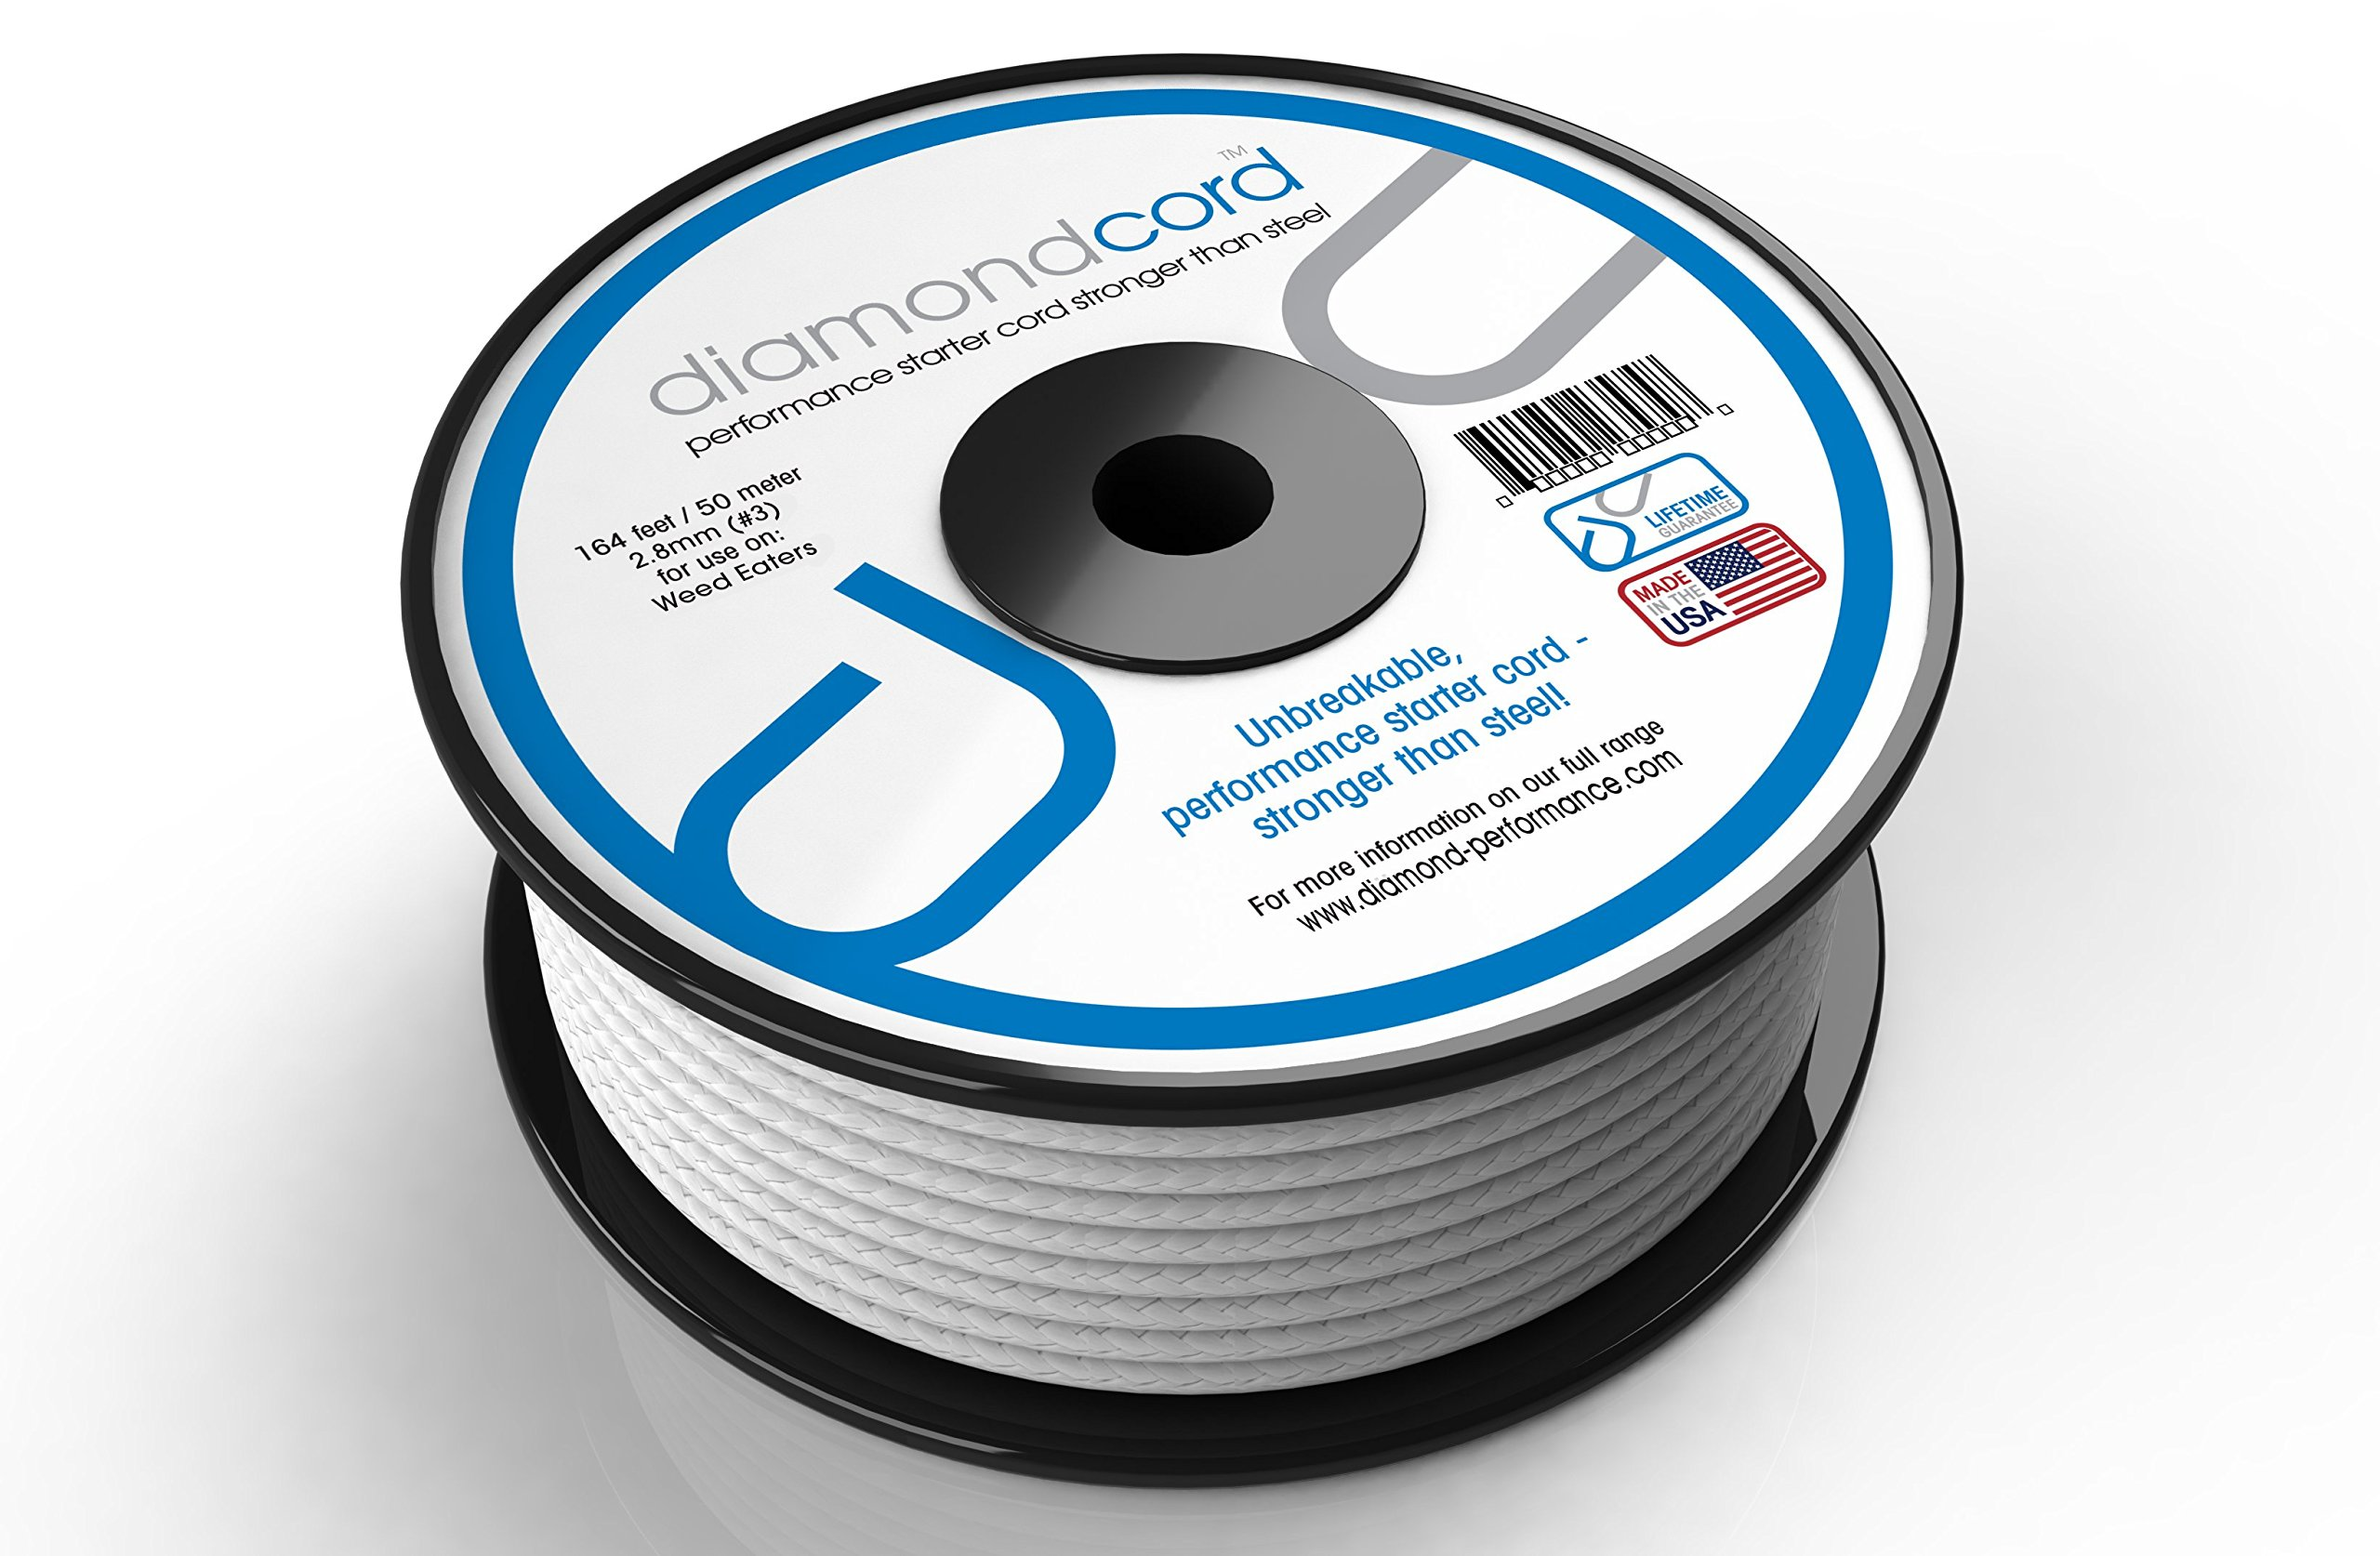 diamondcord 164 Feet by 2.8 mm Unbreakable Gas Engine Pull Starter Recoil Replacement Cord Rope Bulk Spool for Lawn Mowers, Weed Trimmers, and Chainsaws